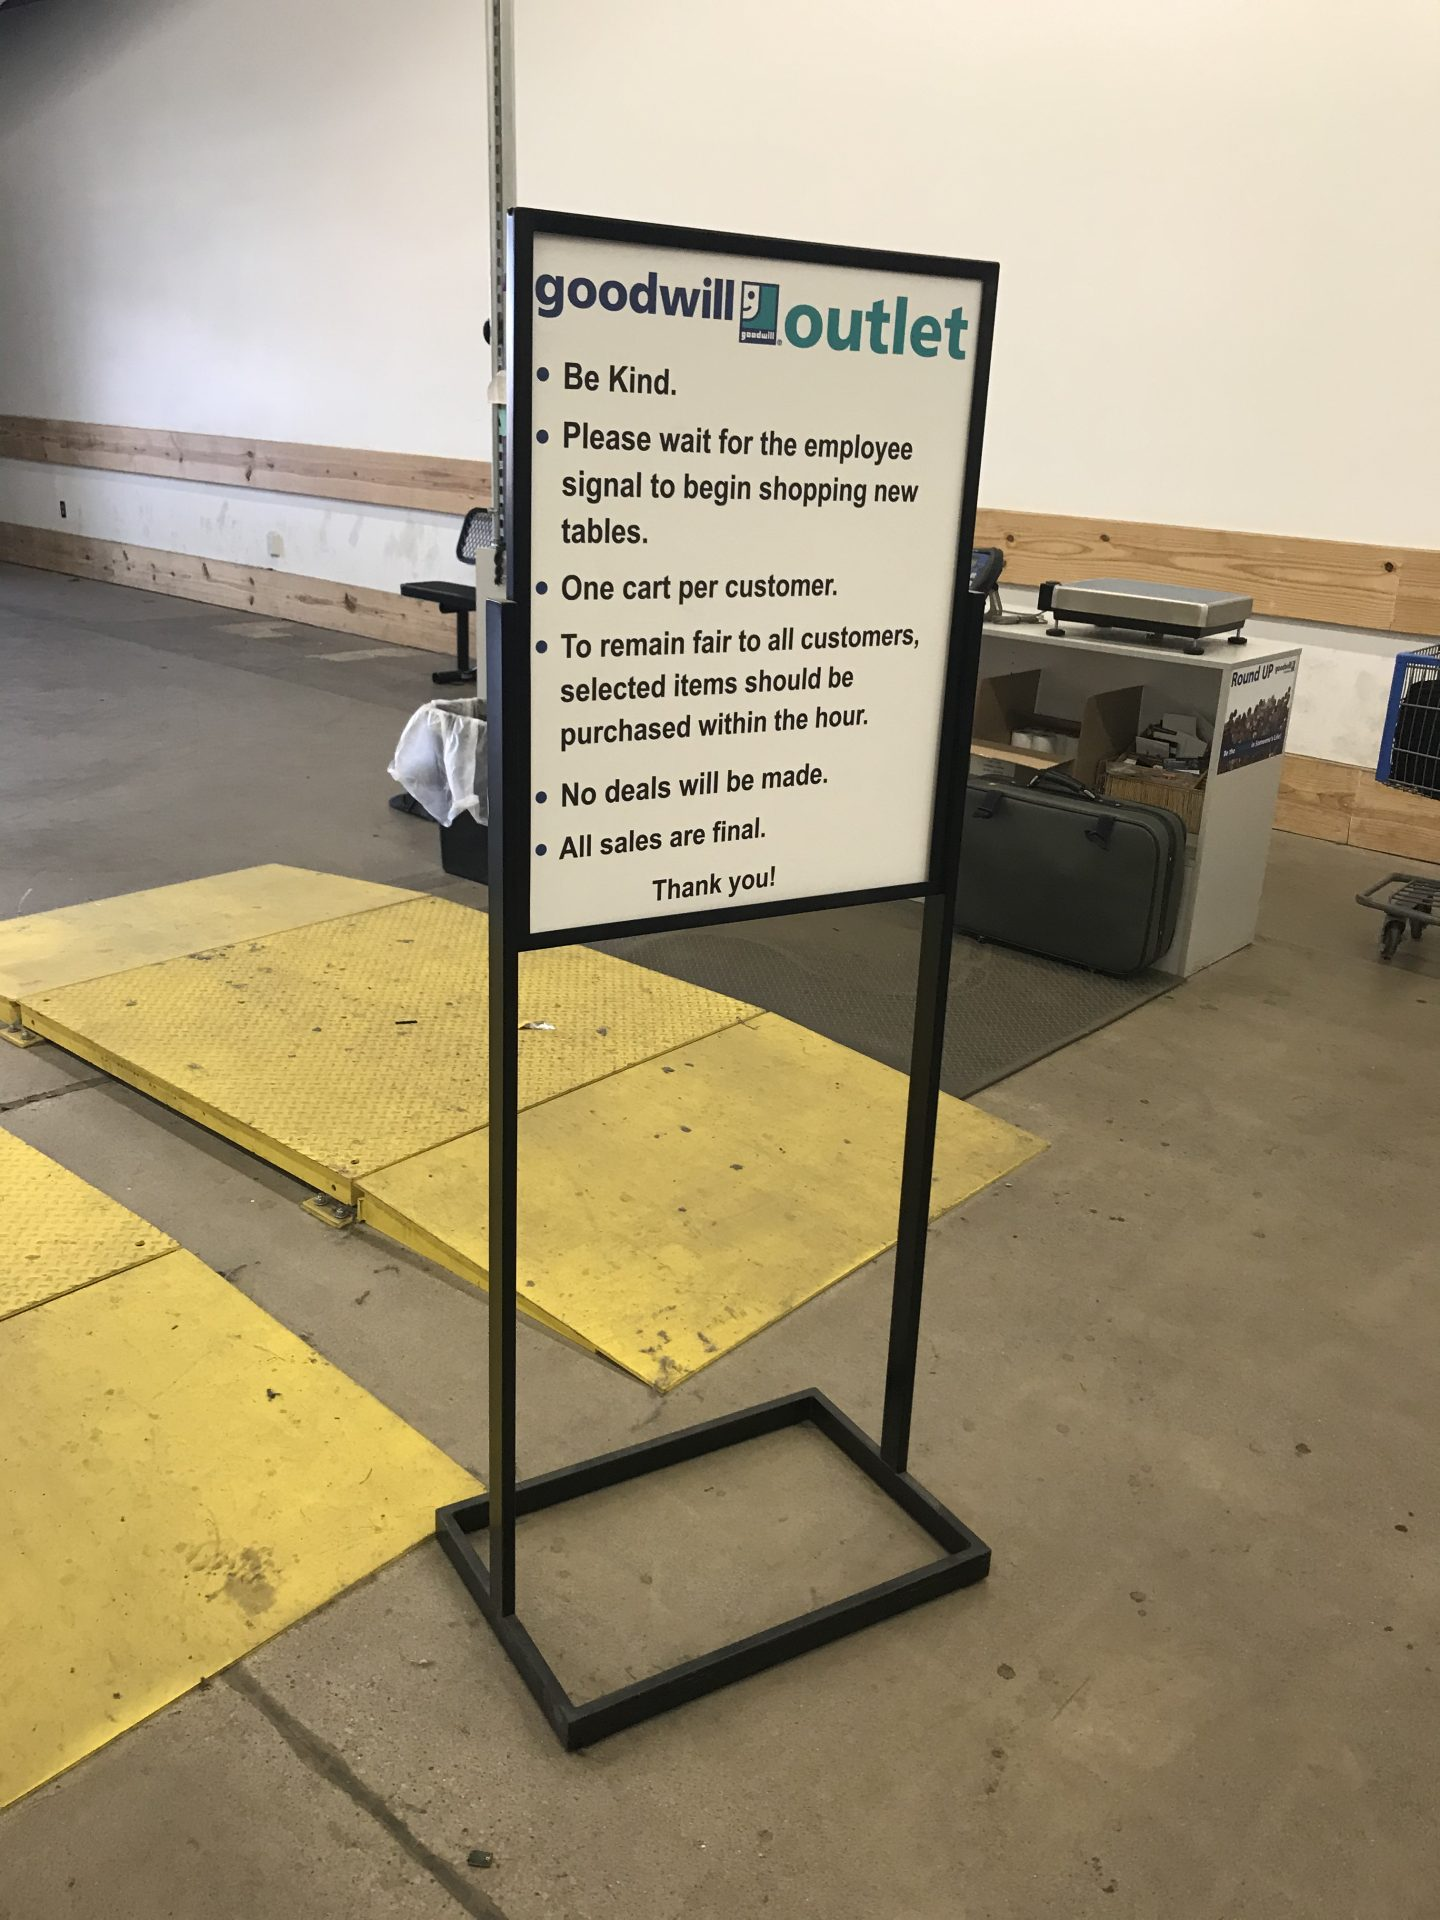 The posted code of conduct from a Goodwill outlet store